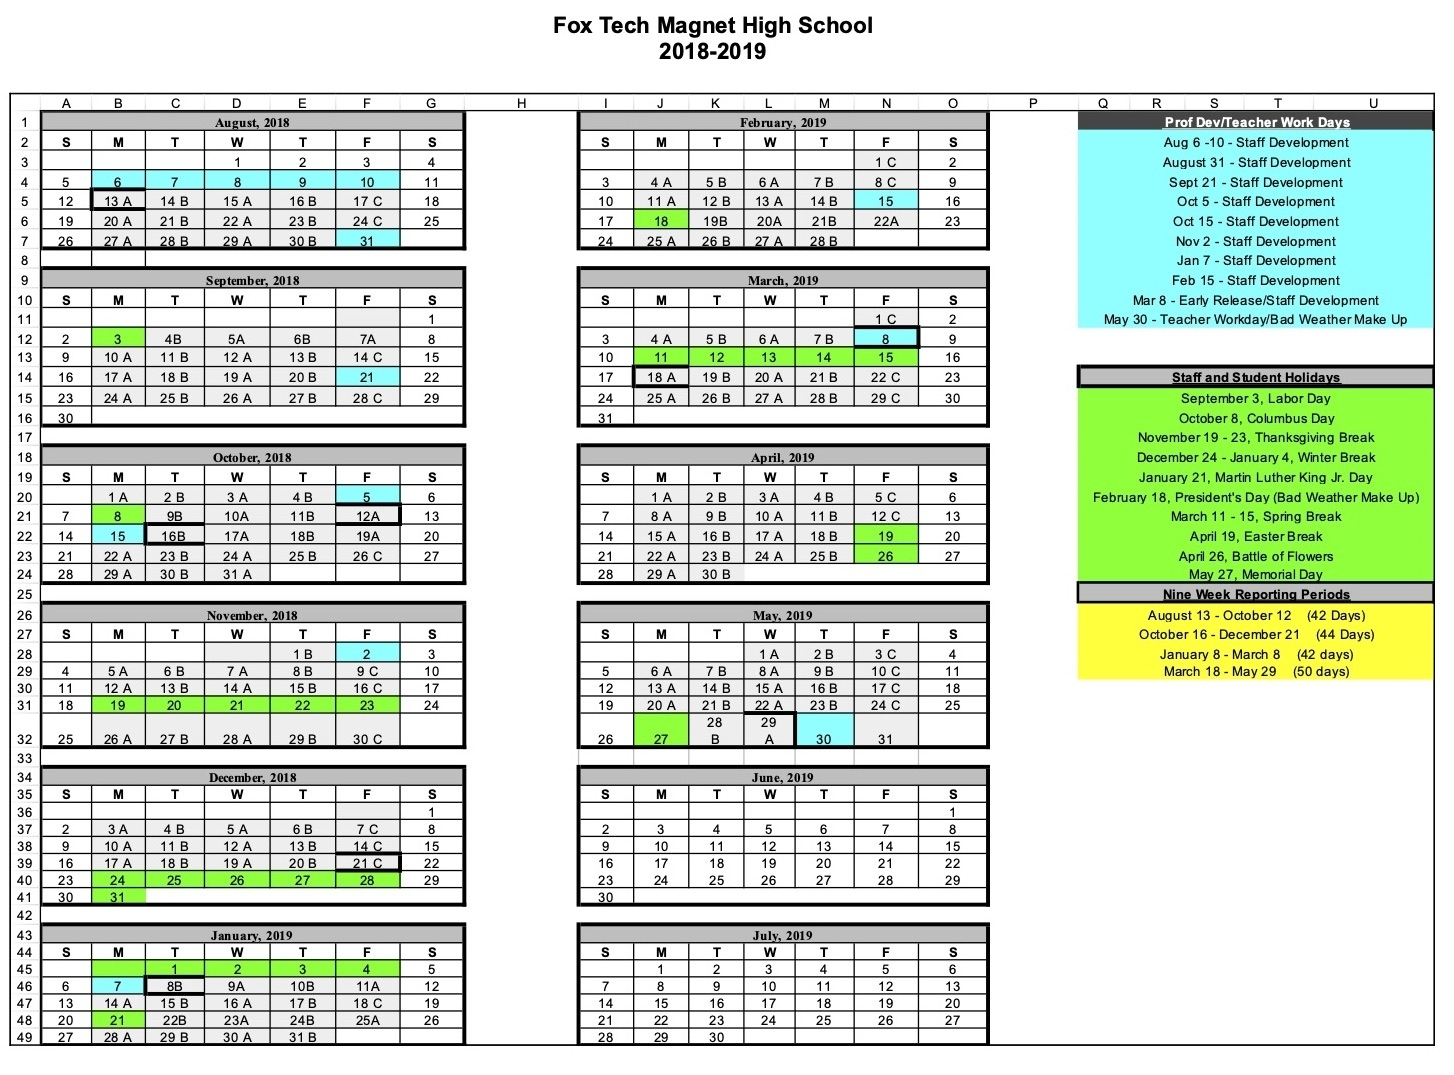 Fox Tech High School - Calendar Exceptional Fox C-6 School Calendar